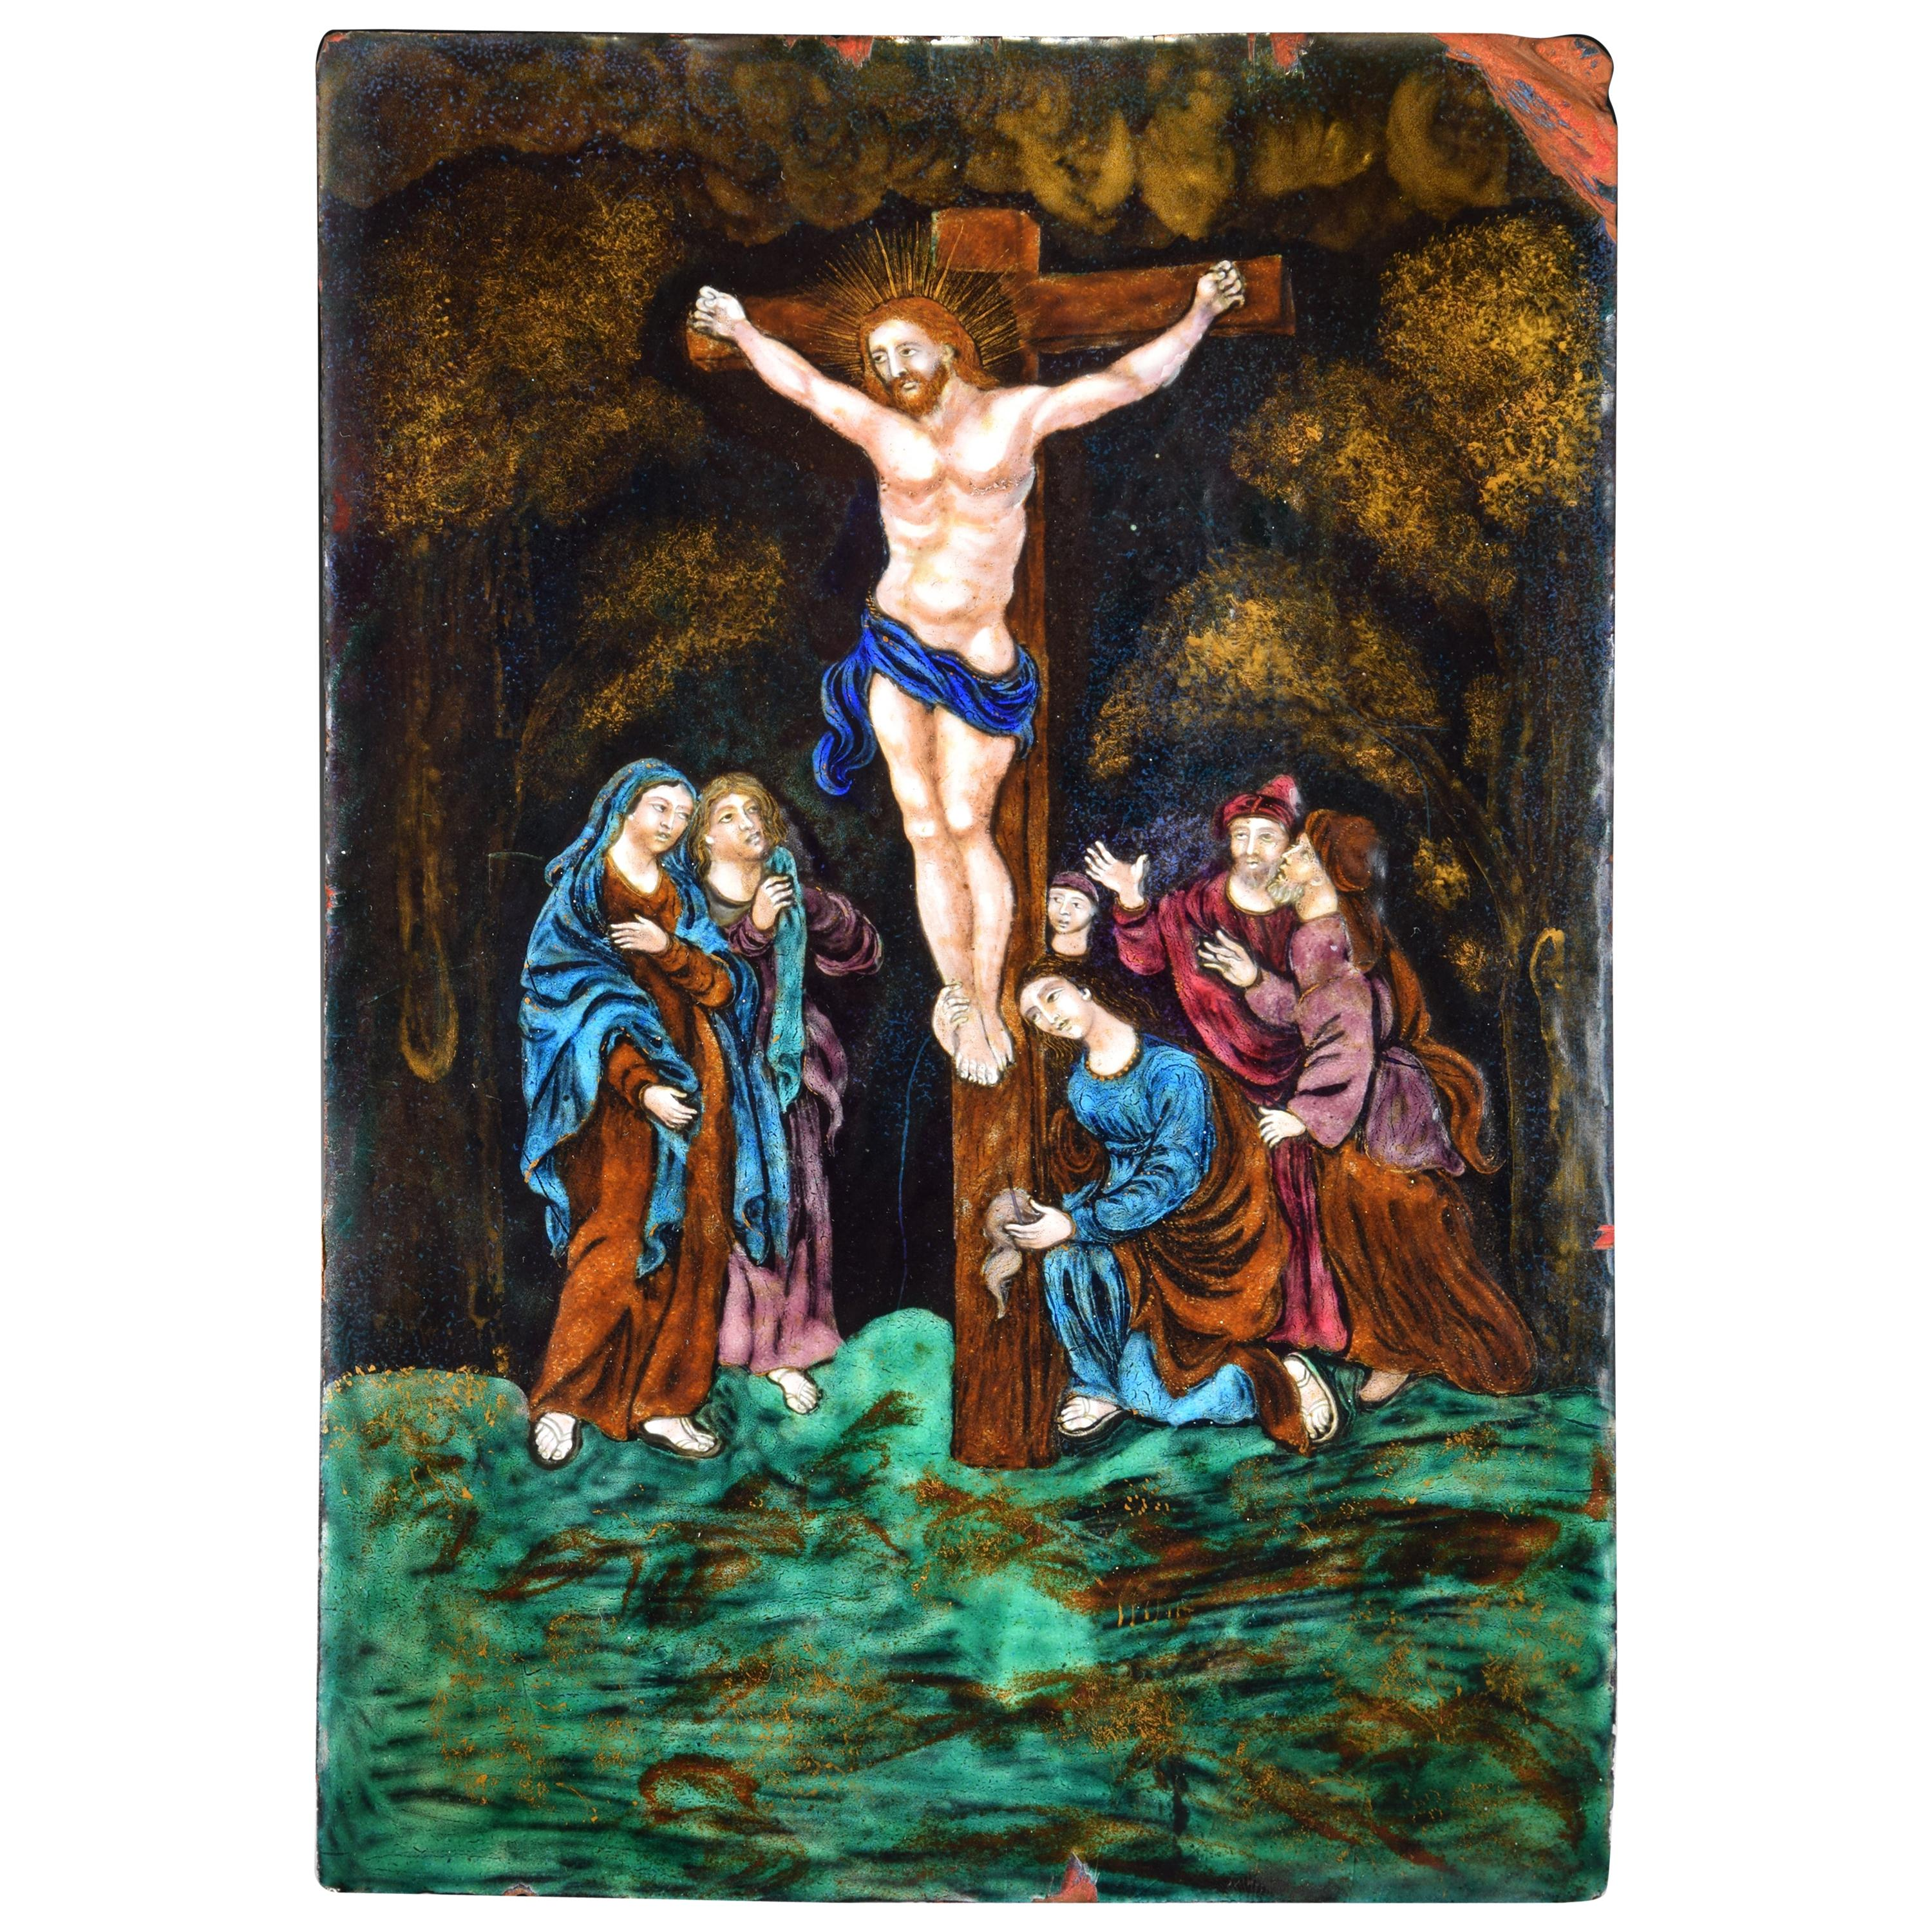 Crucifixion, Enamel on Copper, Limoges, France, 16th Century